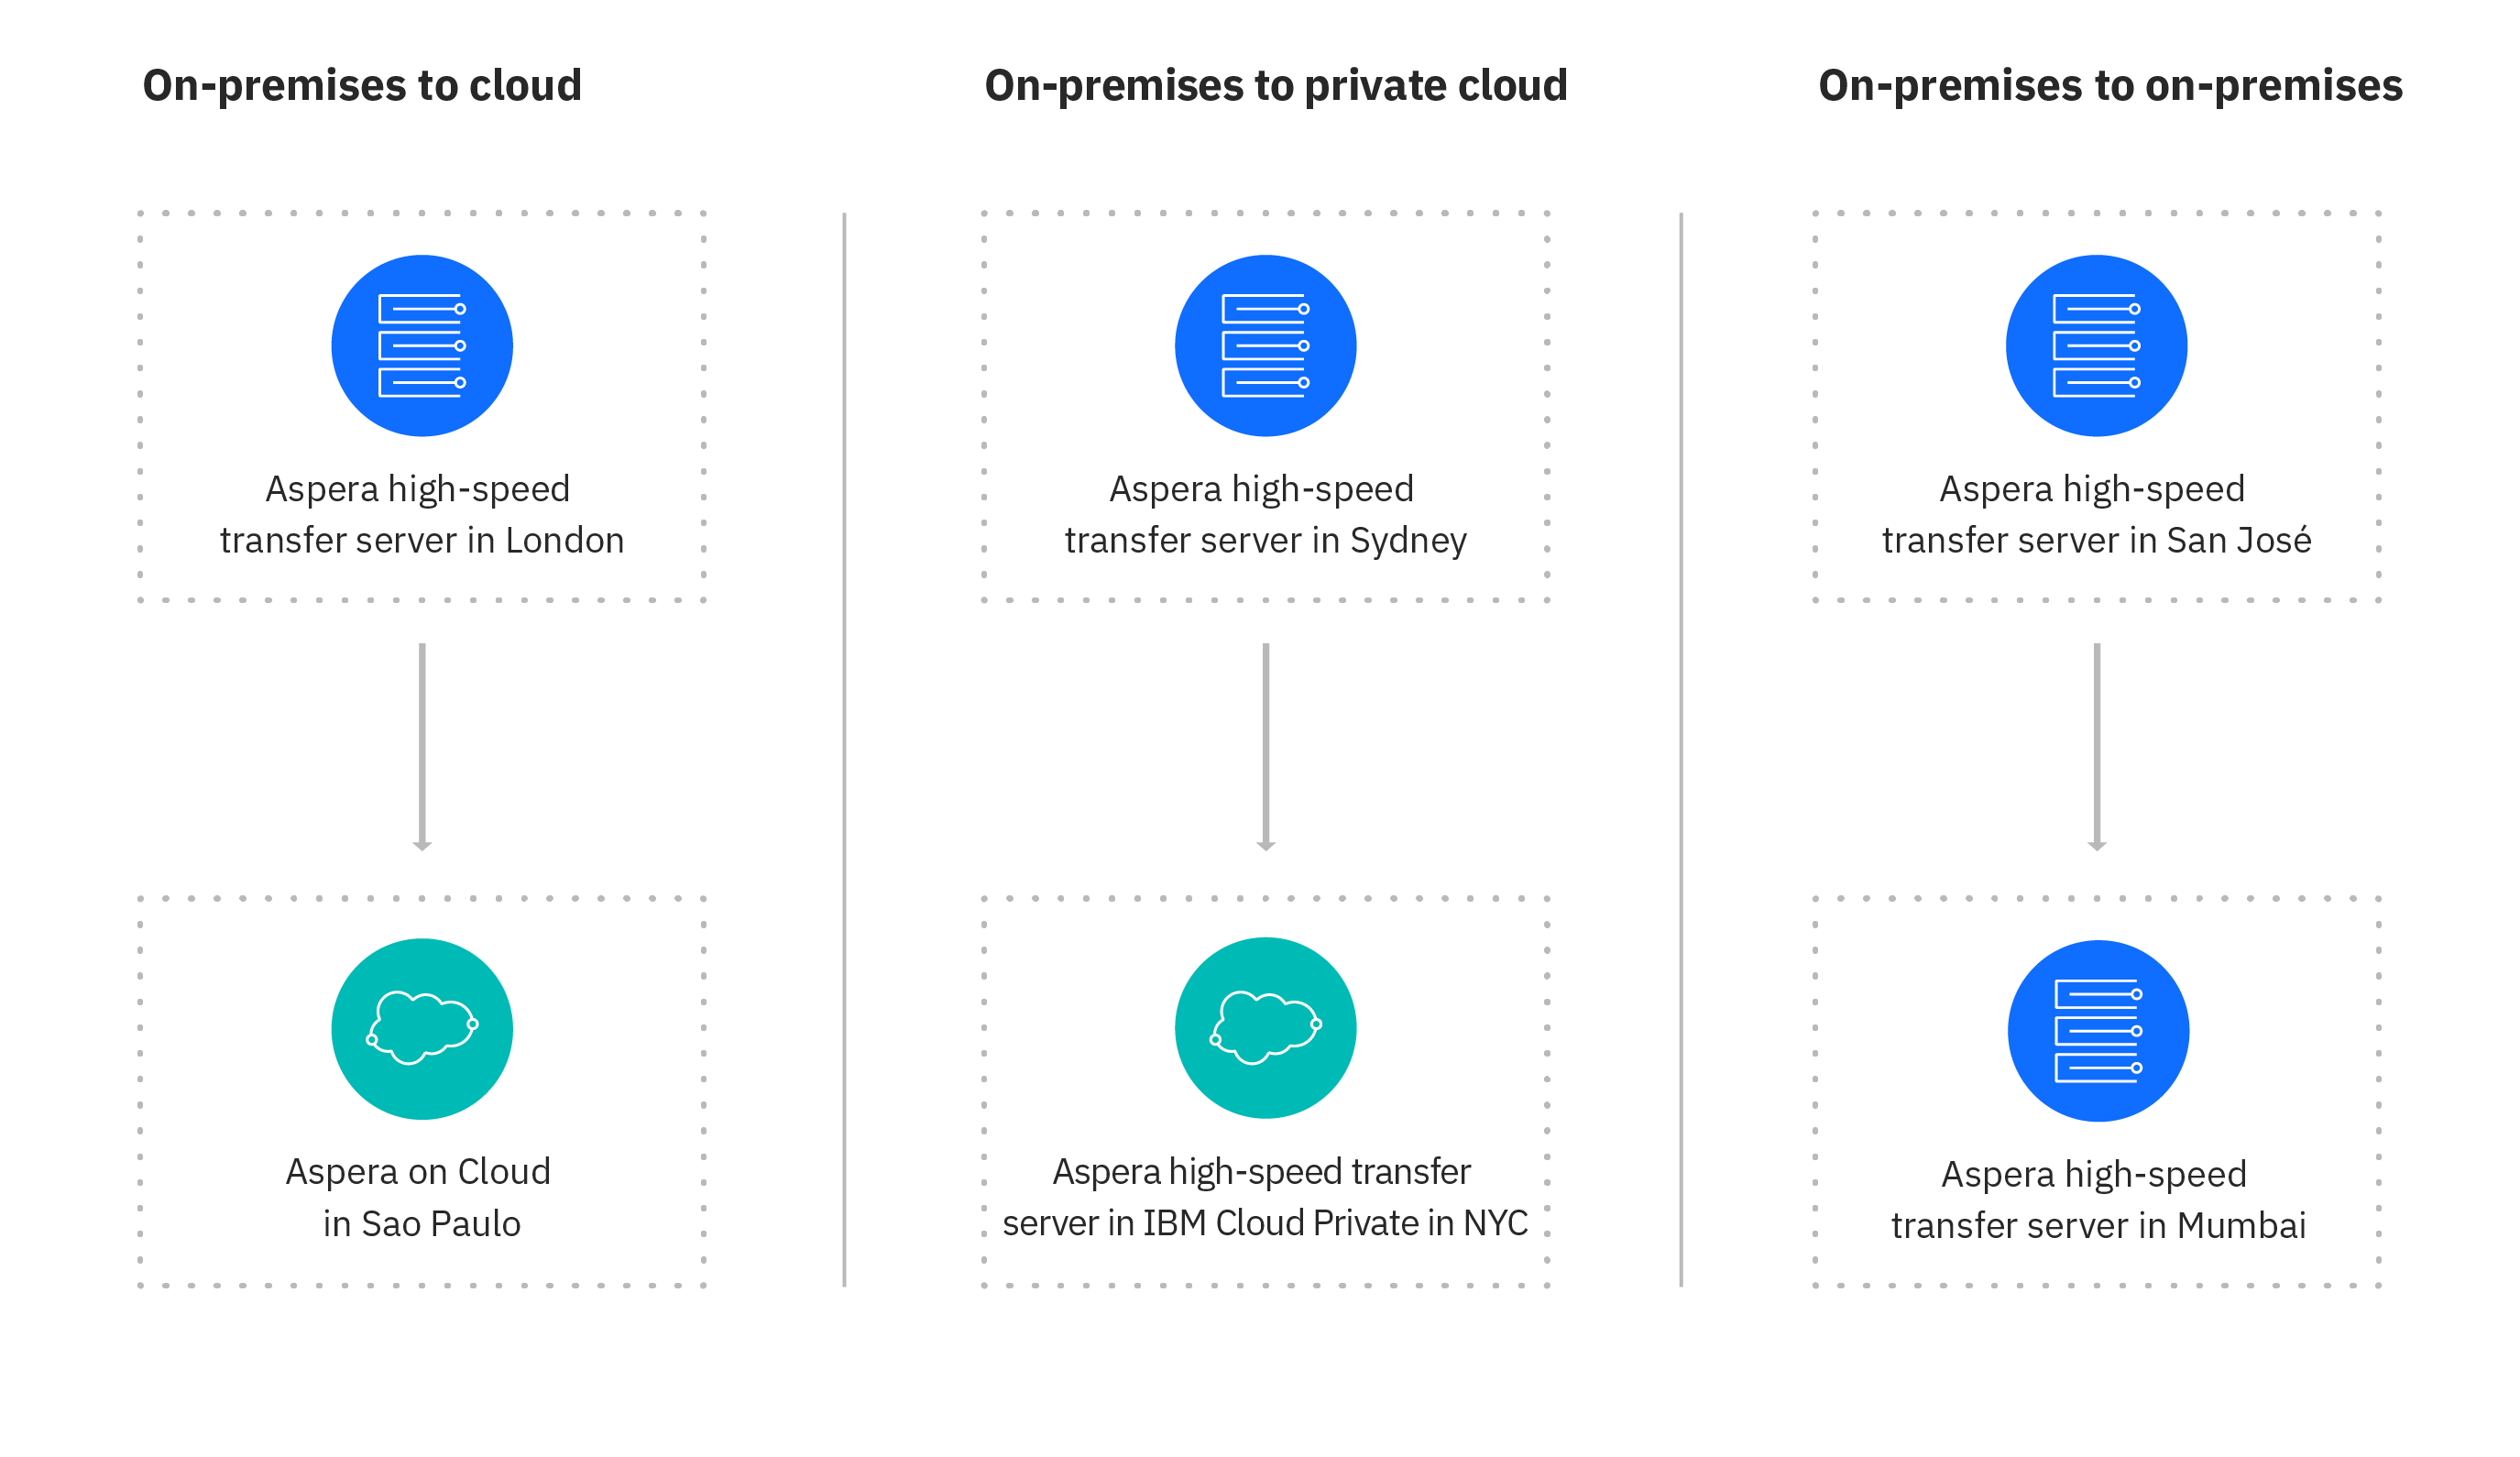 Diagram of Aspera data migration from on-premises to cloud, private cloud, or back to on-premises